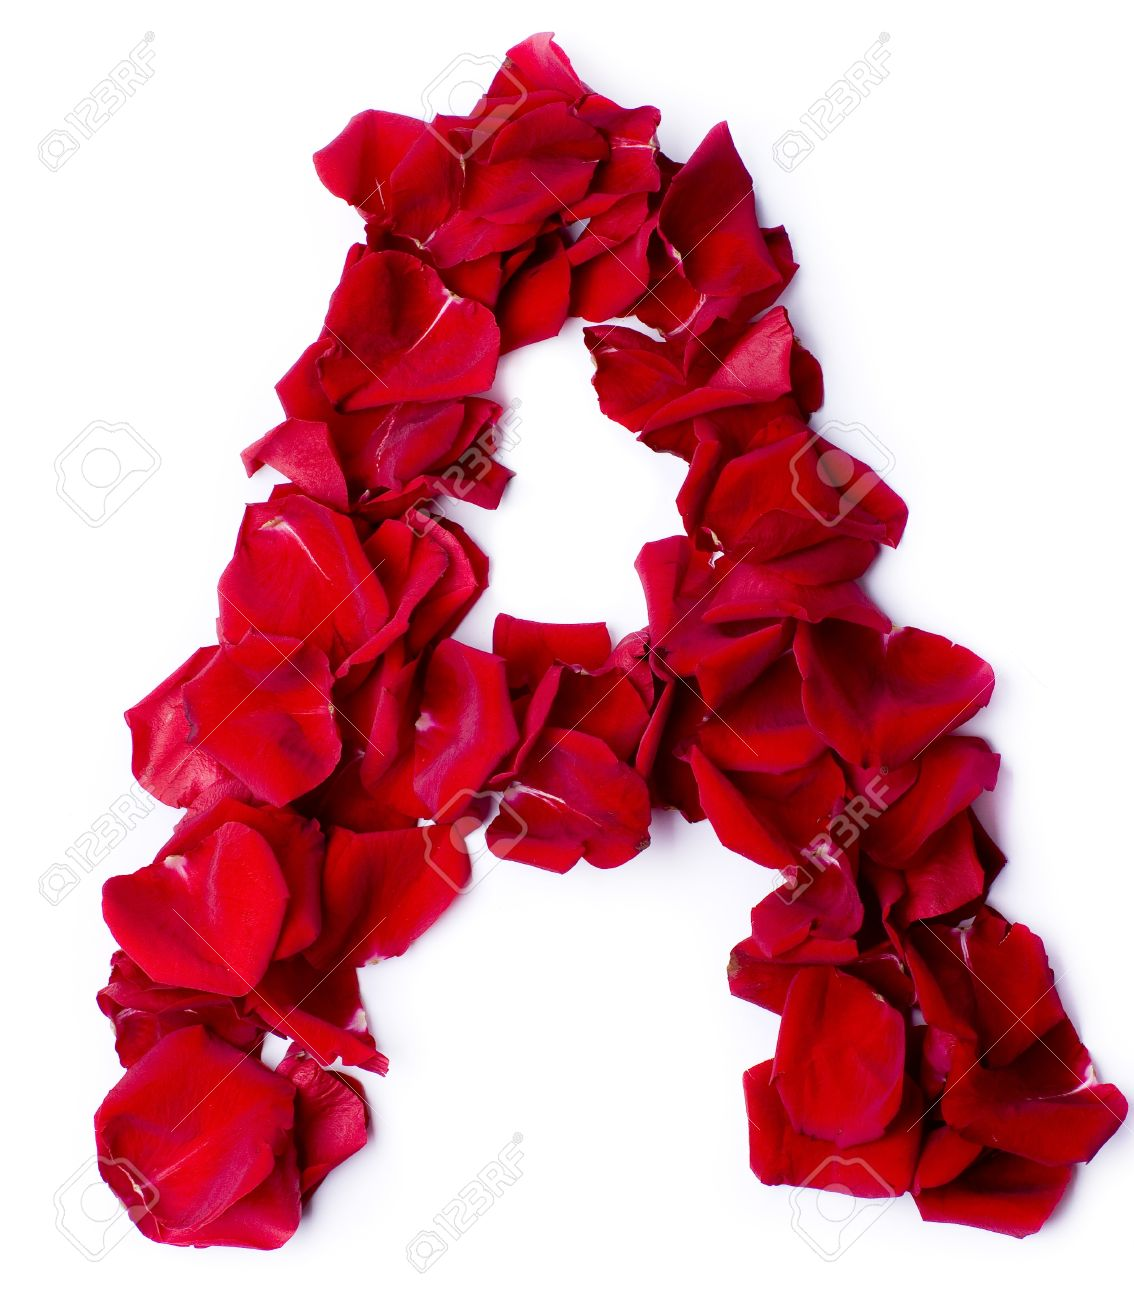 alphabet a made from red petals rose stock photo picture and